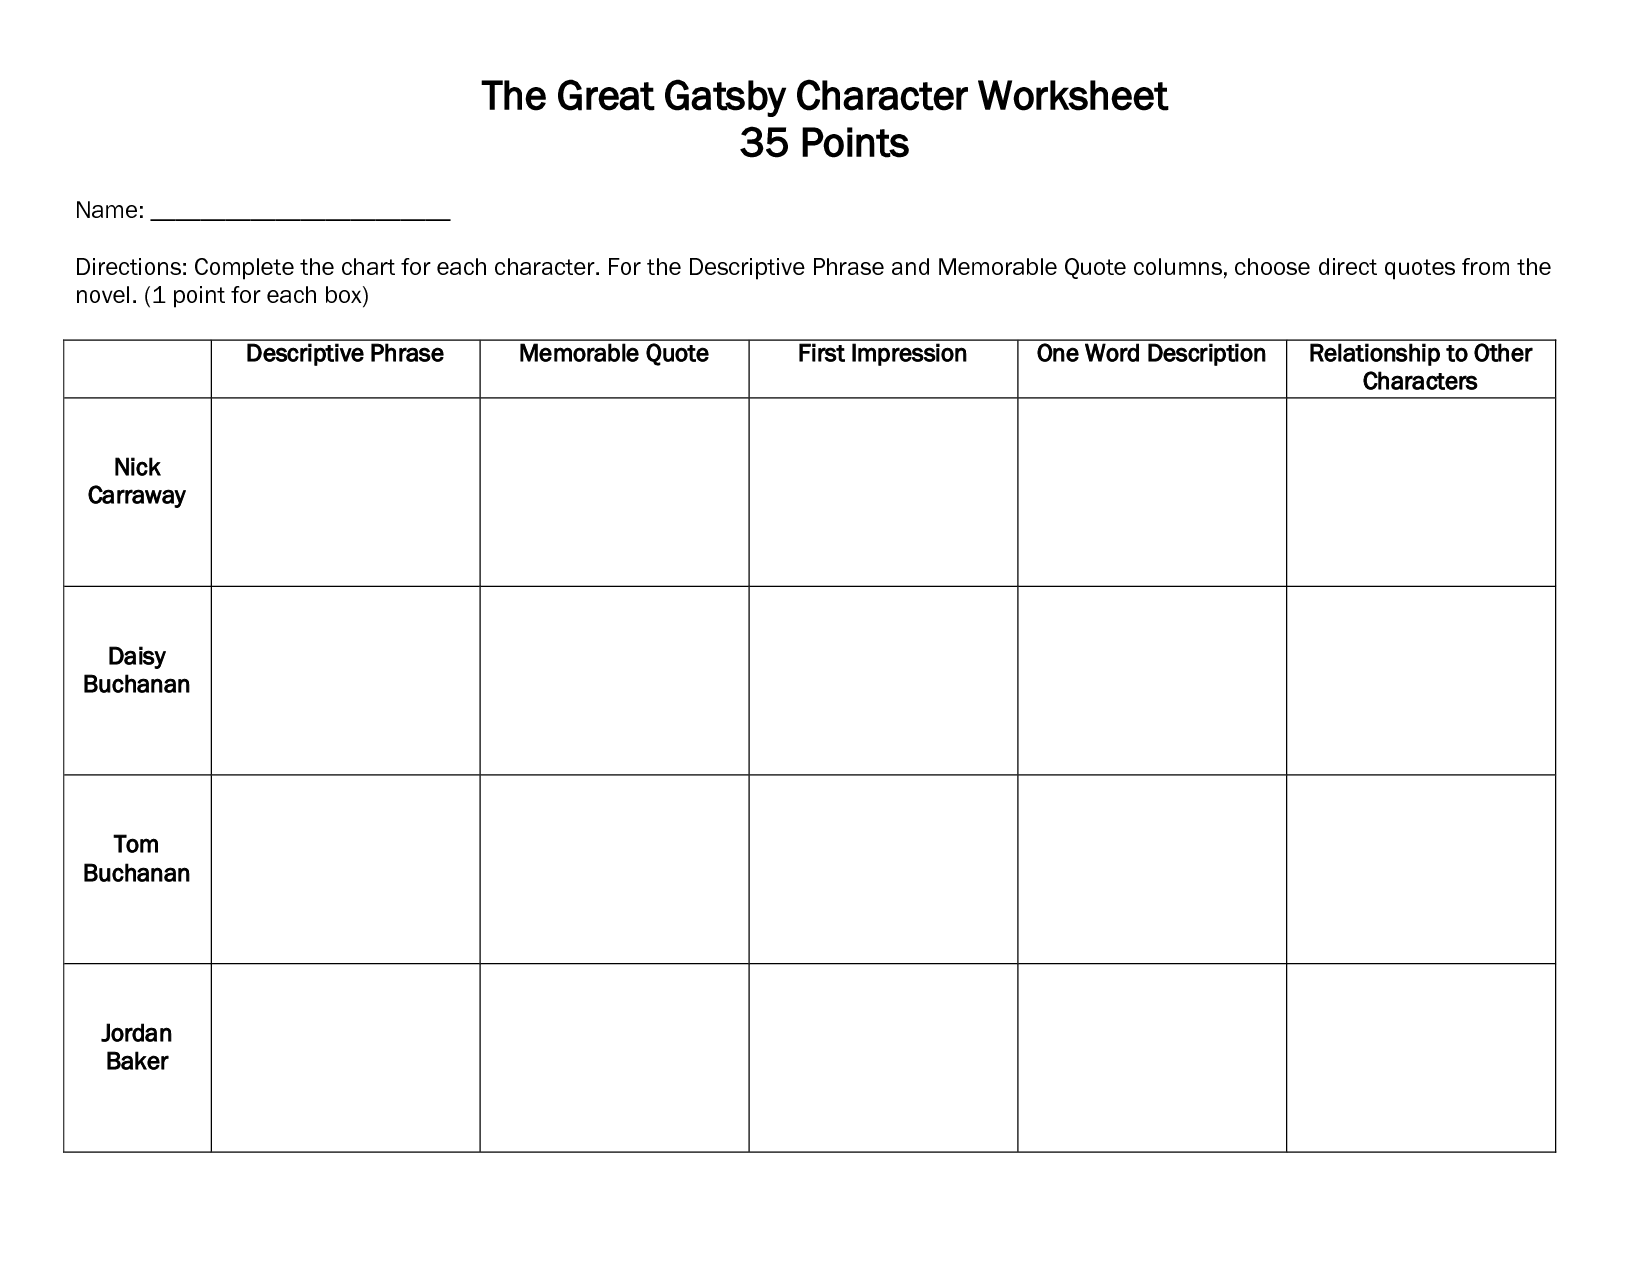 worksheet Character Study Worksheet worksheets for great gatsby the character worksheet 35 points name directions